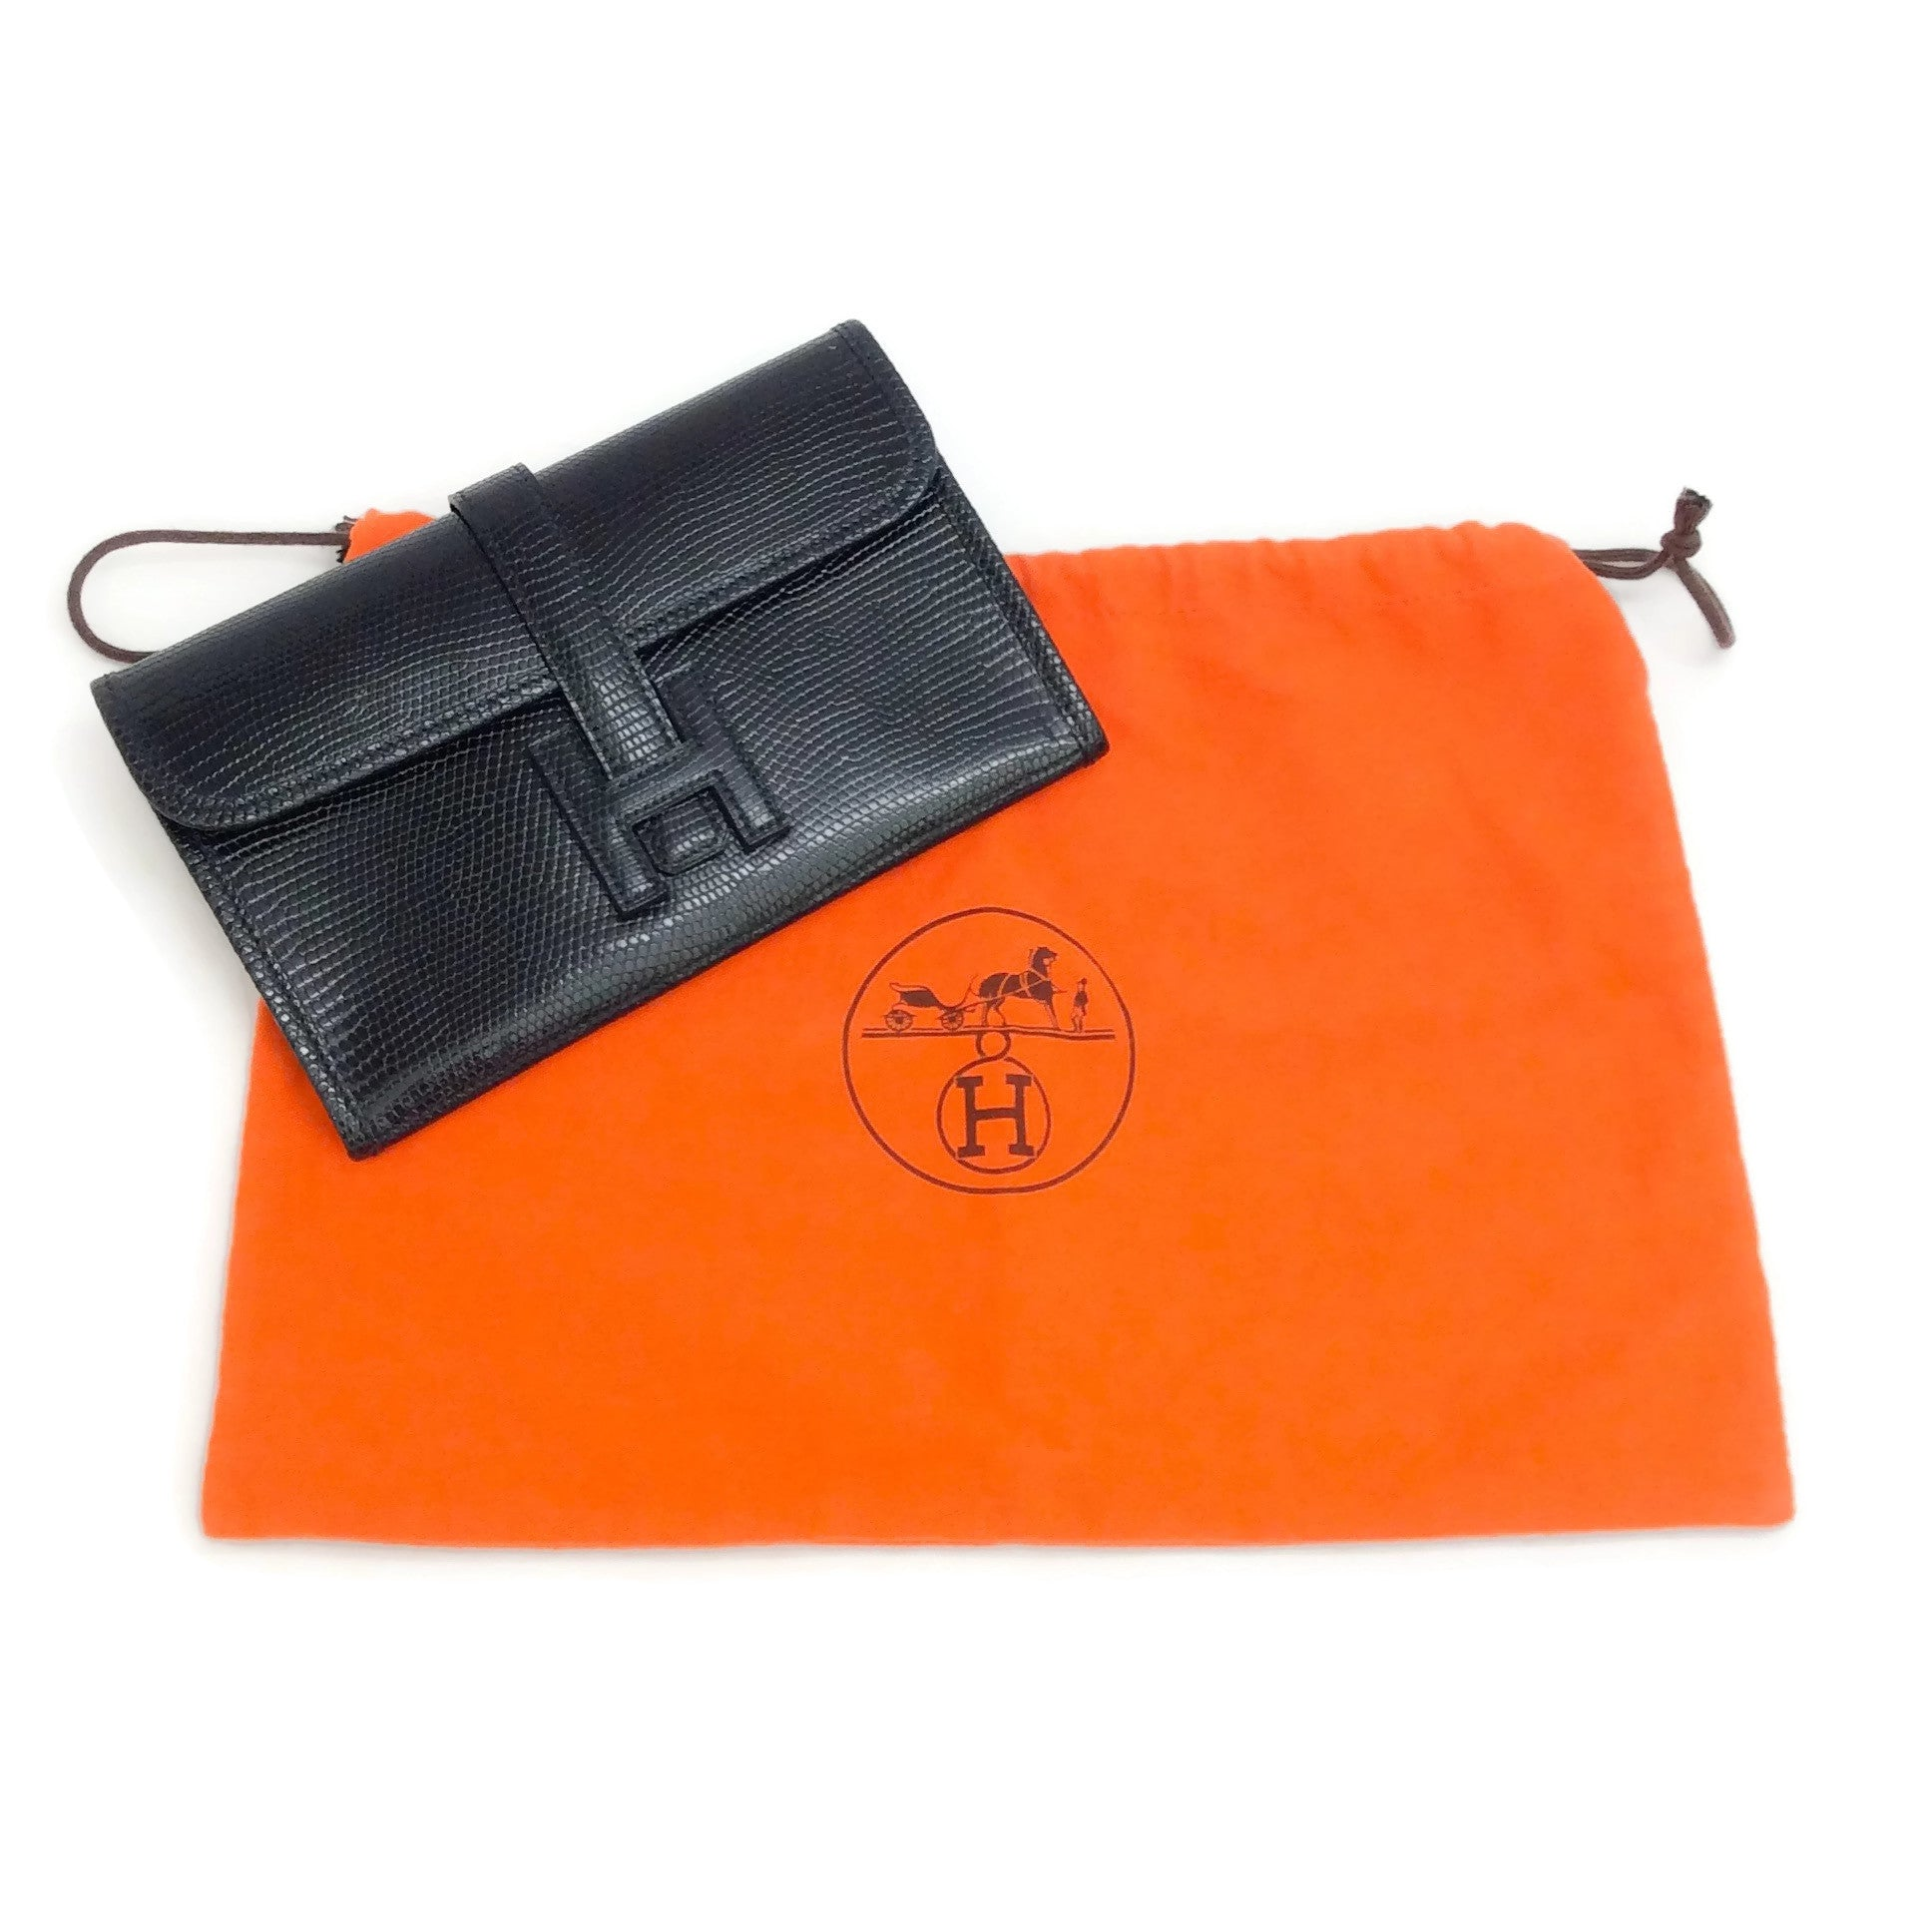 Hermès Jige Black Lizard Clutch